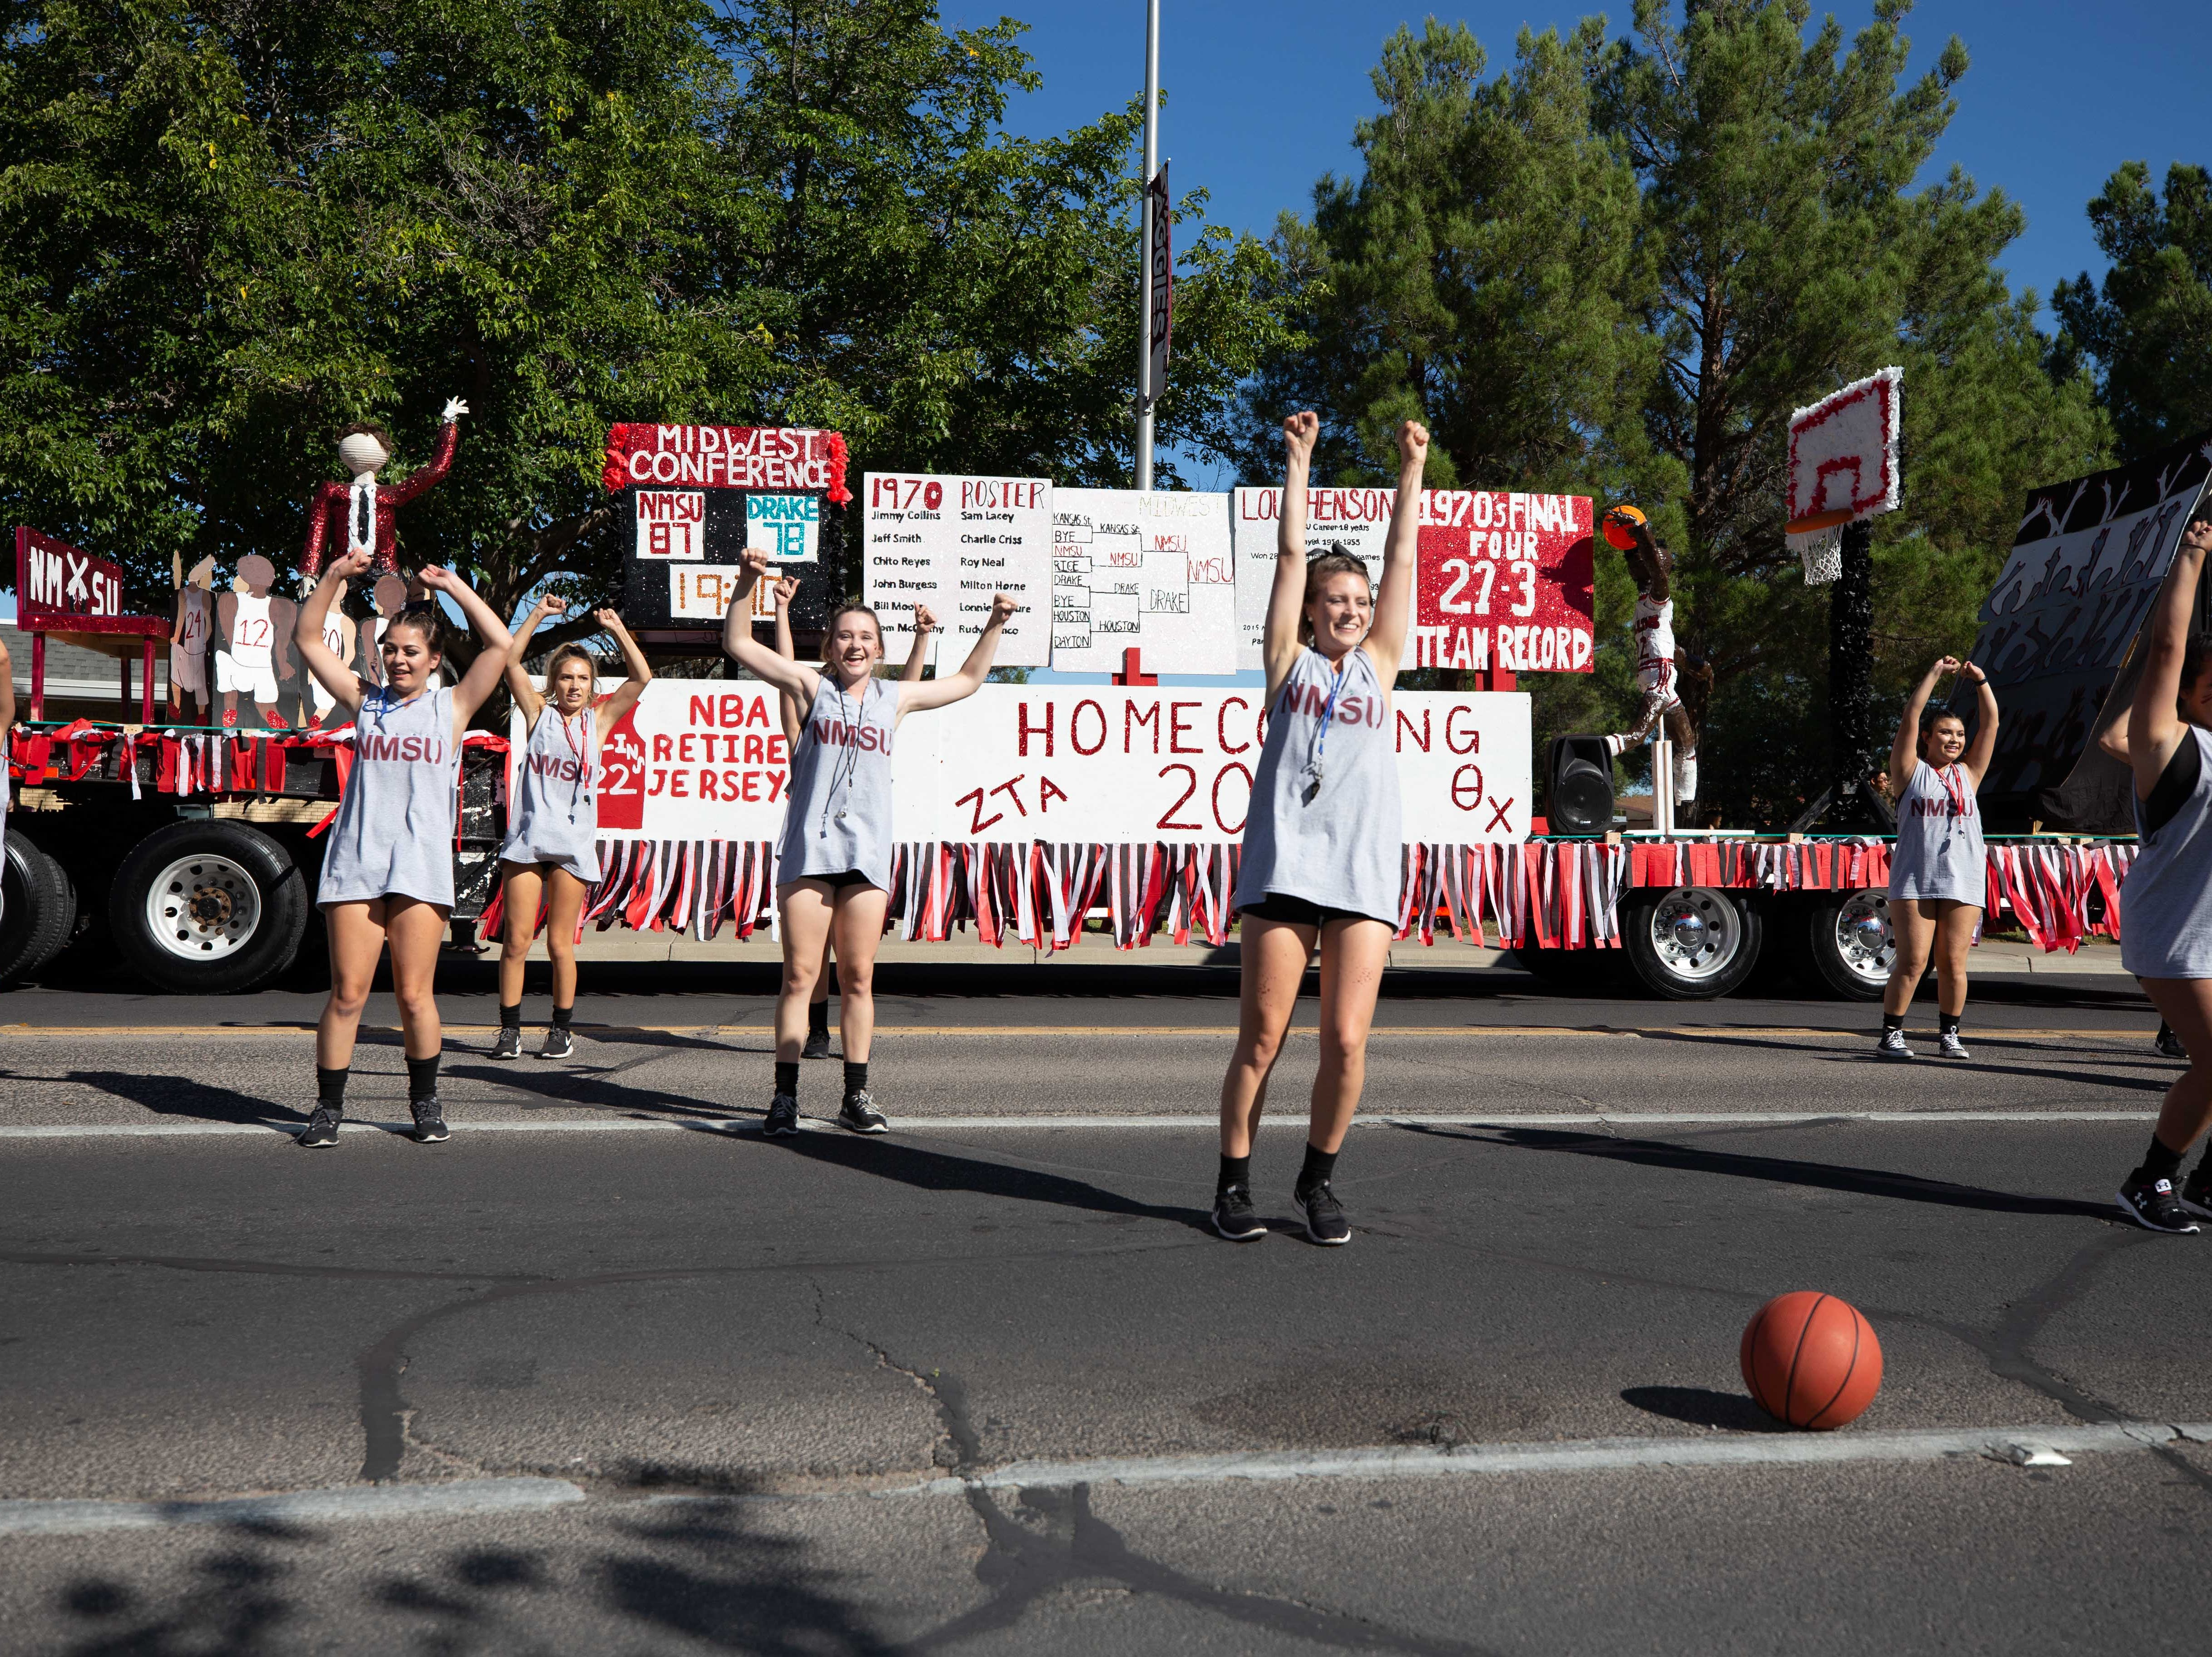 Zeta Tau Alpha and Theta Chi members at the NMSU Homecoming Parade on October 6, 2018.